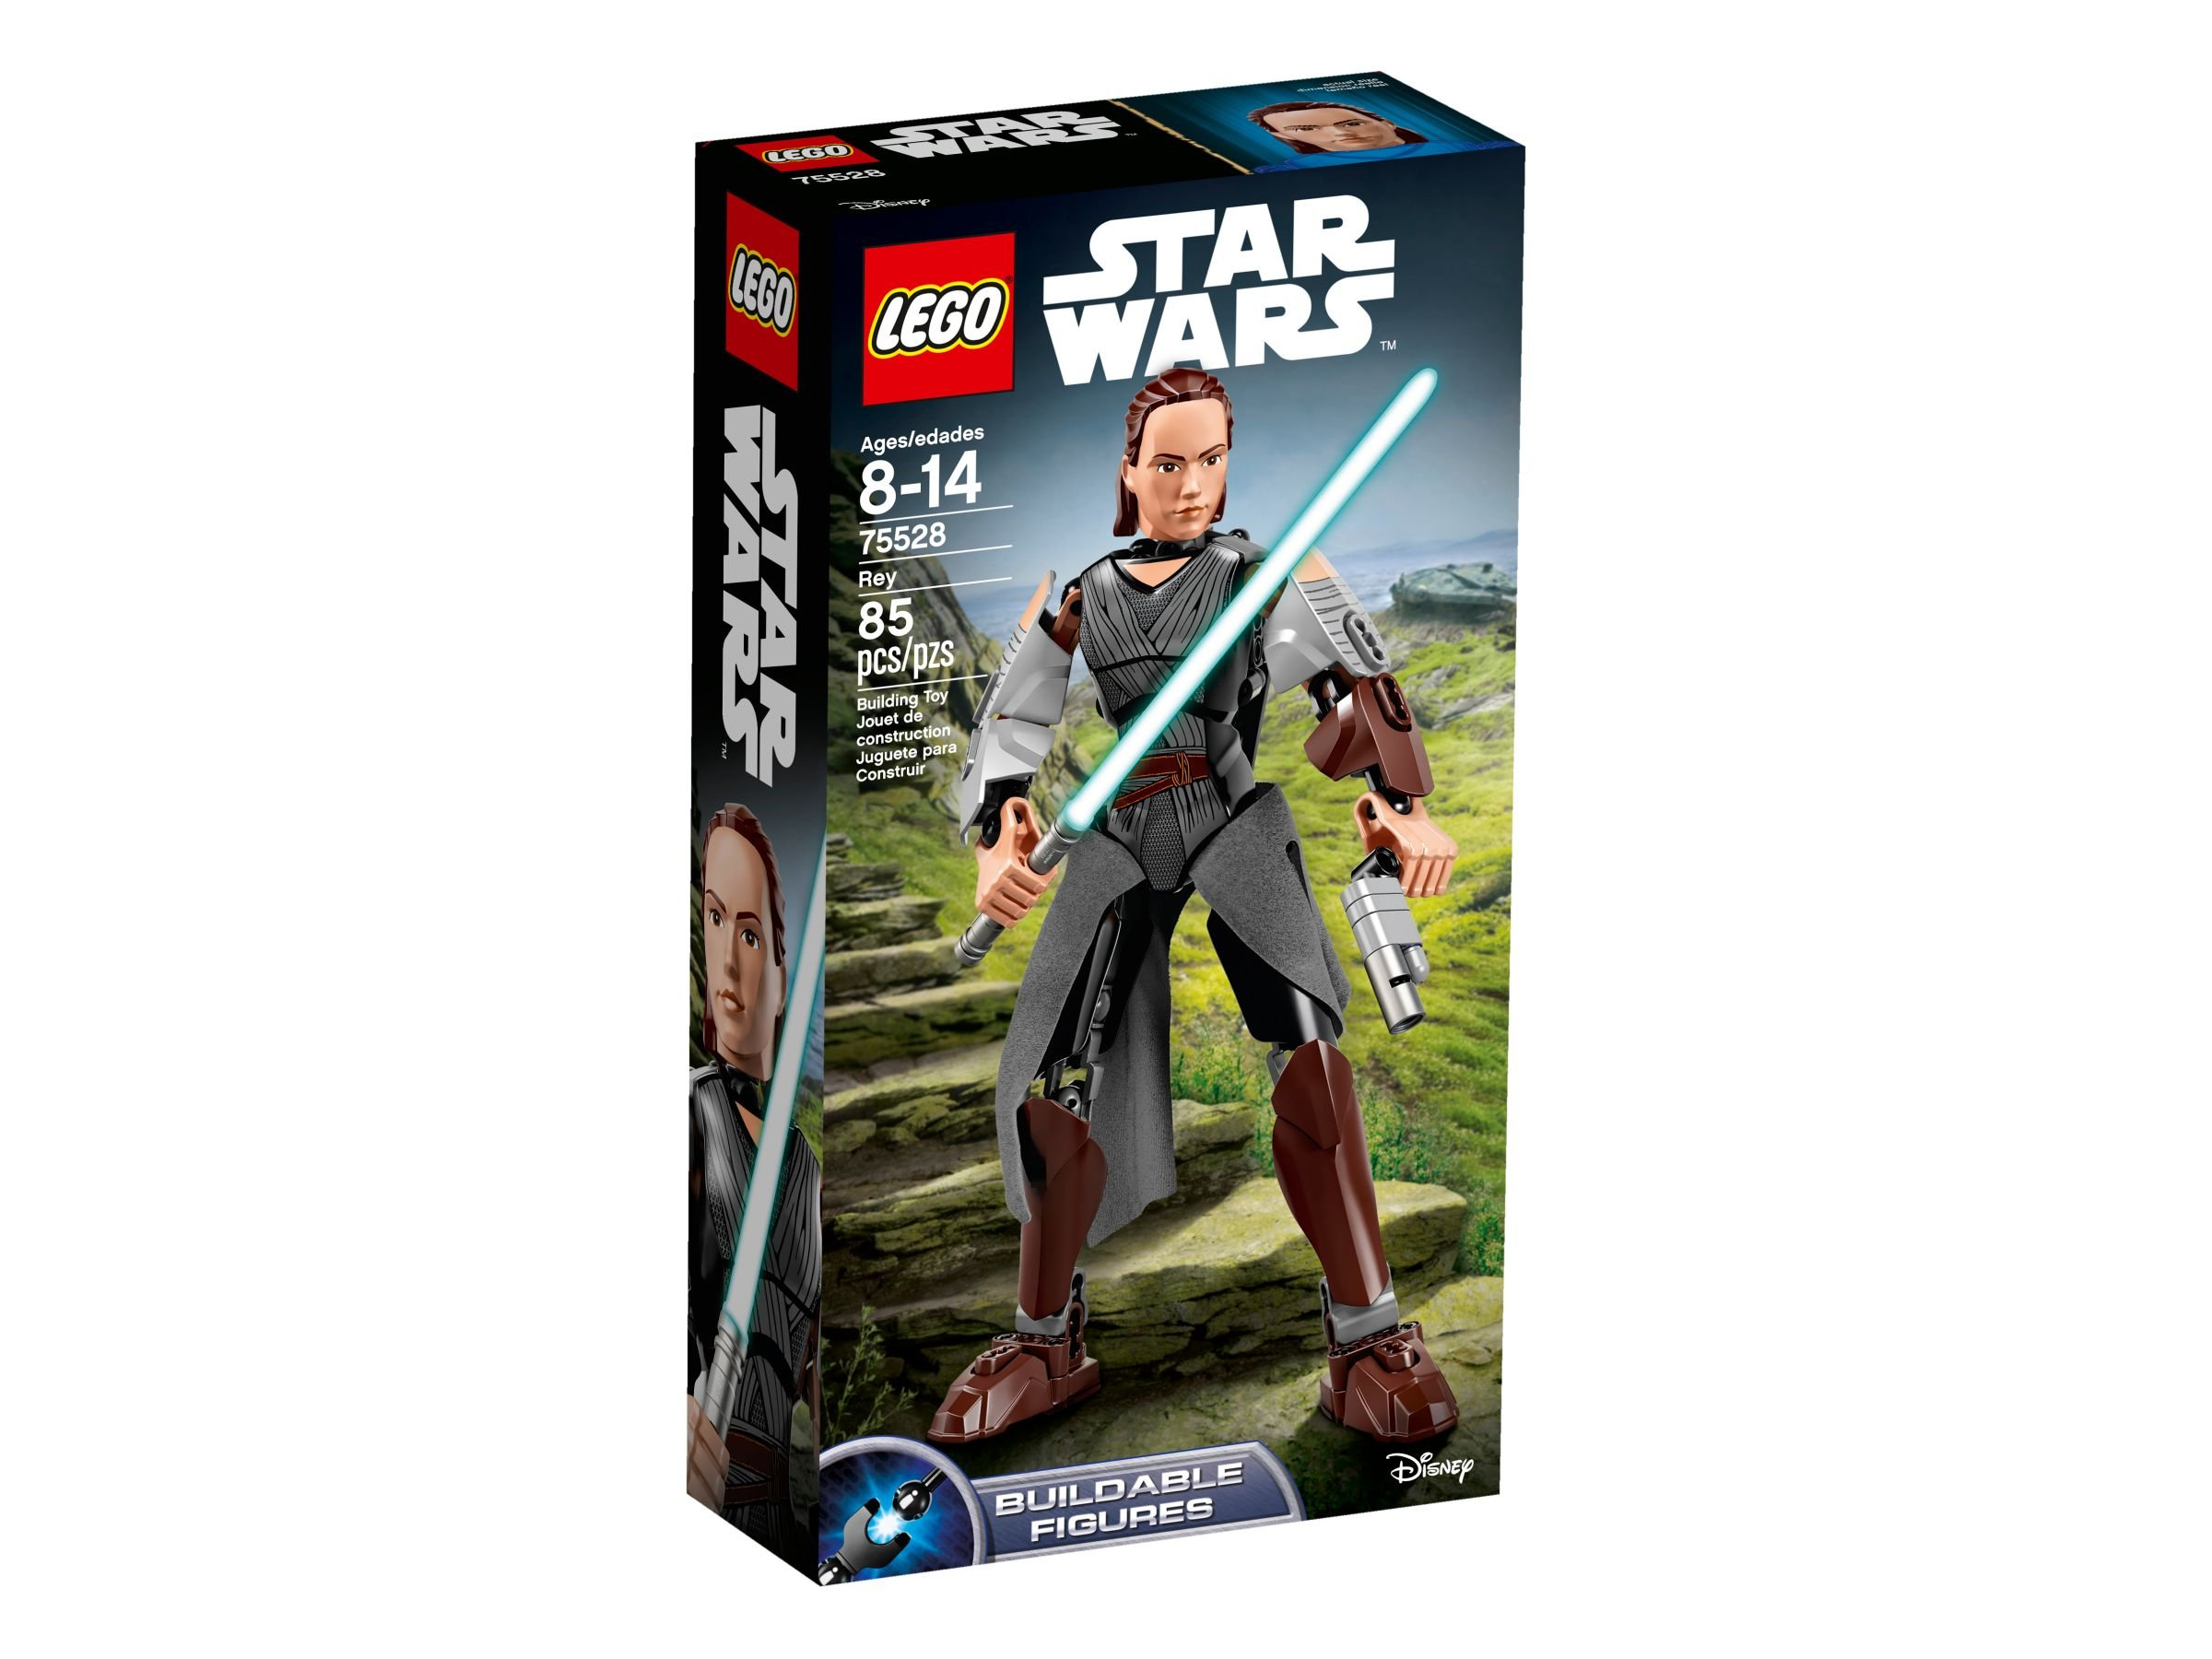 LEGO Star Wars Buildable Figures 75528 Rey LEGO_75528_alt1.jpg